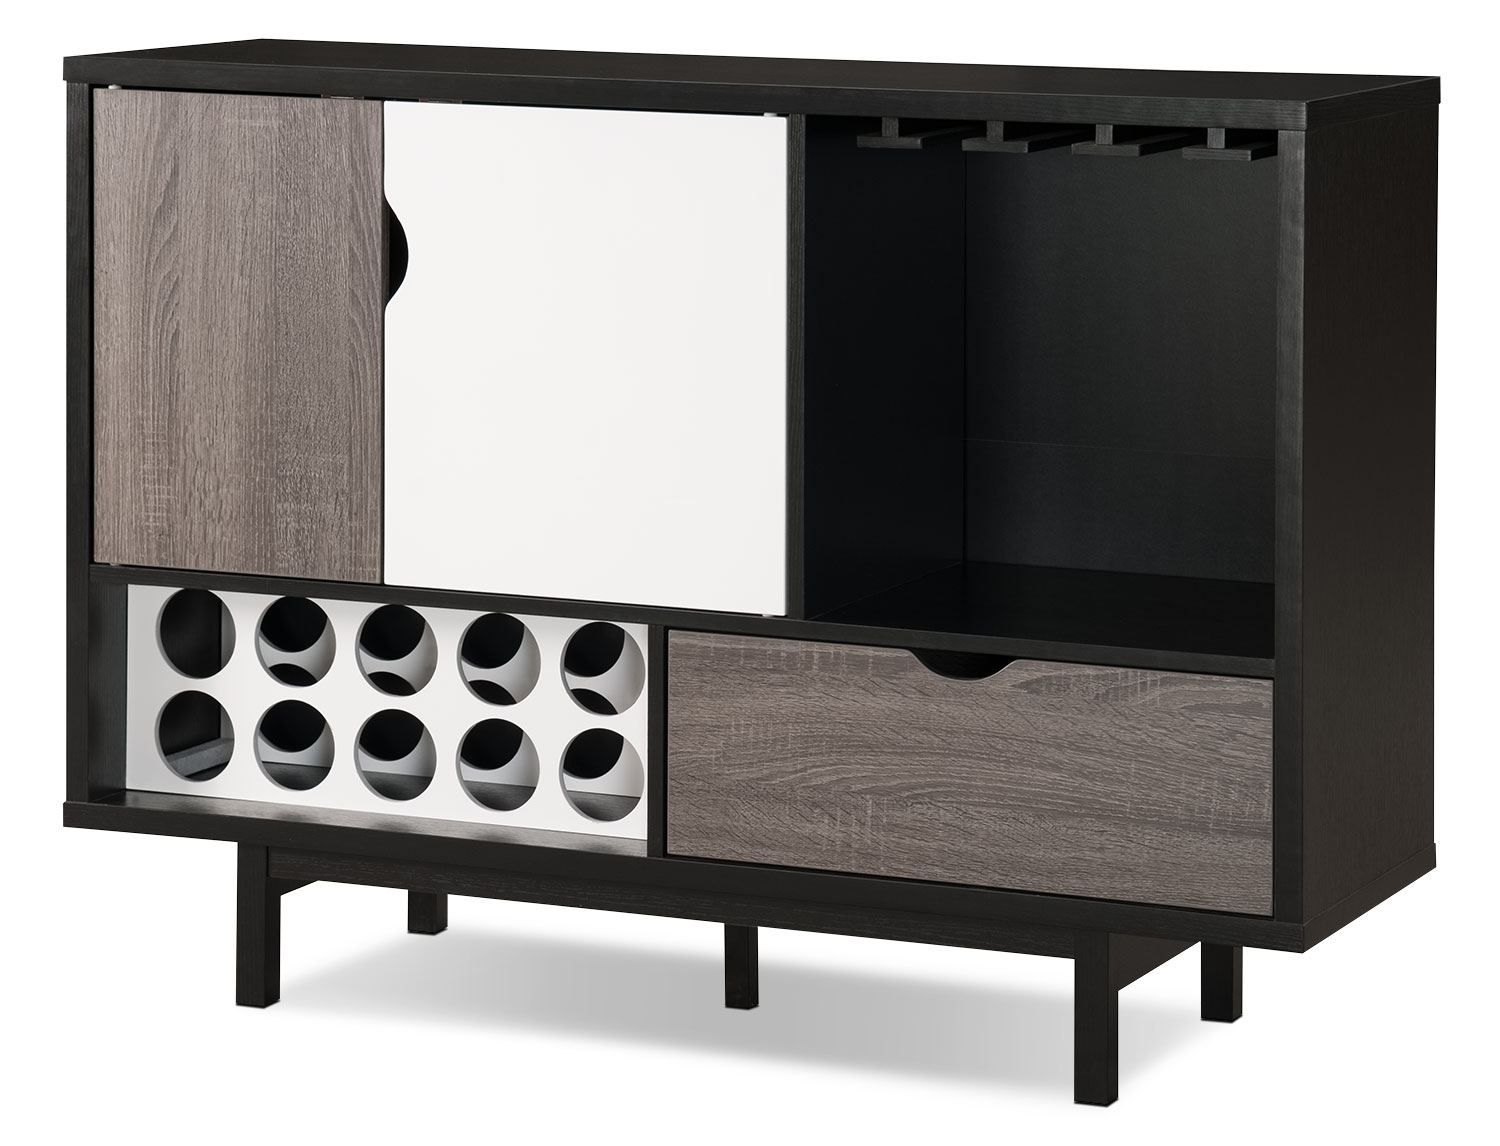 Perth Bar Cabinet with Wine Storage